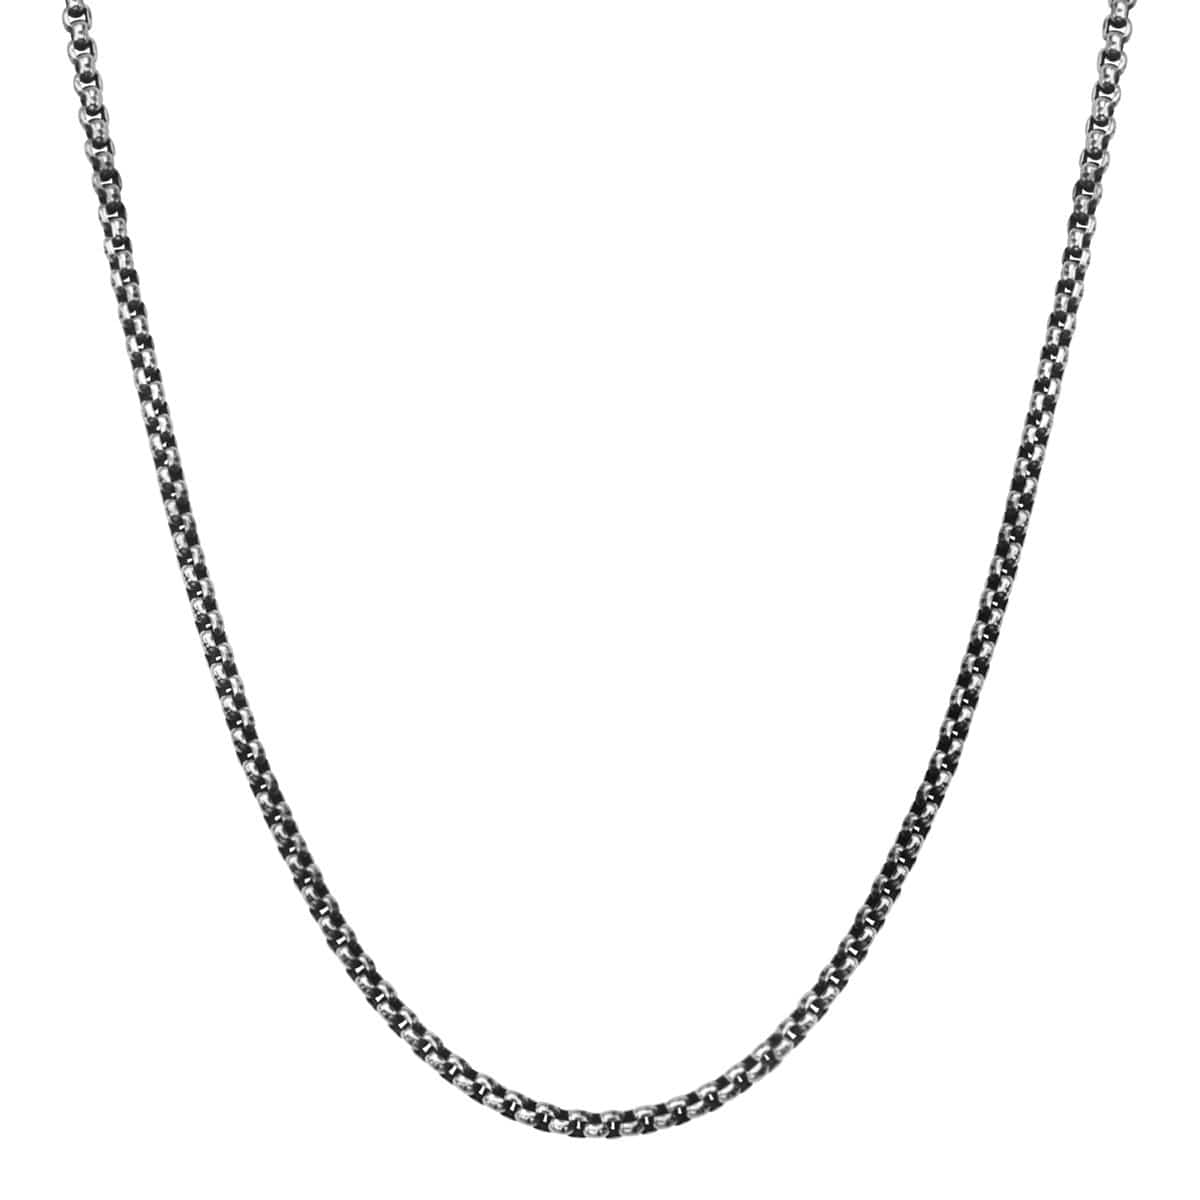 Darkened Silver Stainless Steel 3mm Bold Box Chain Chains